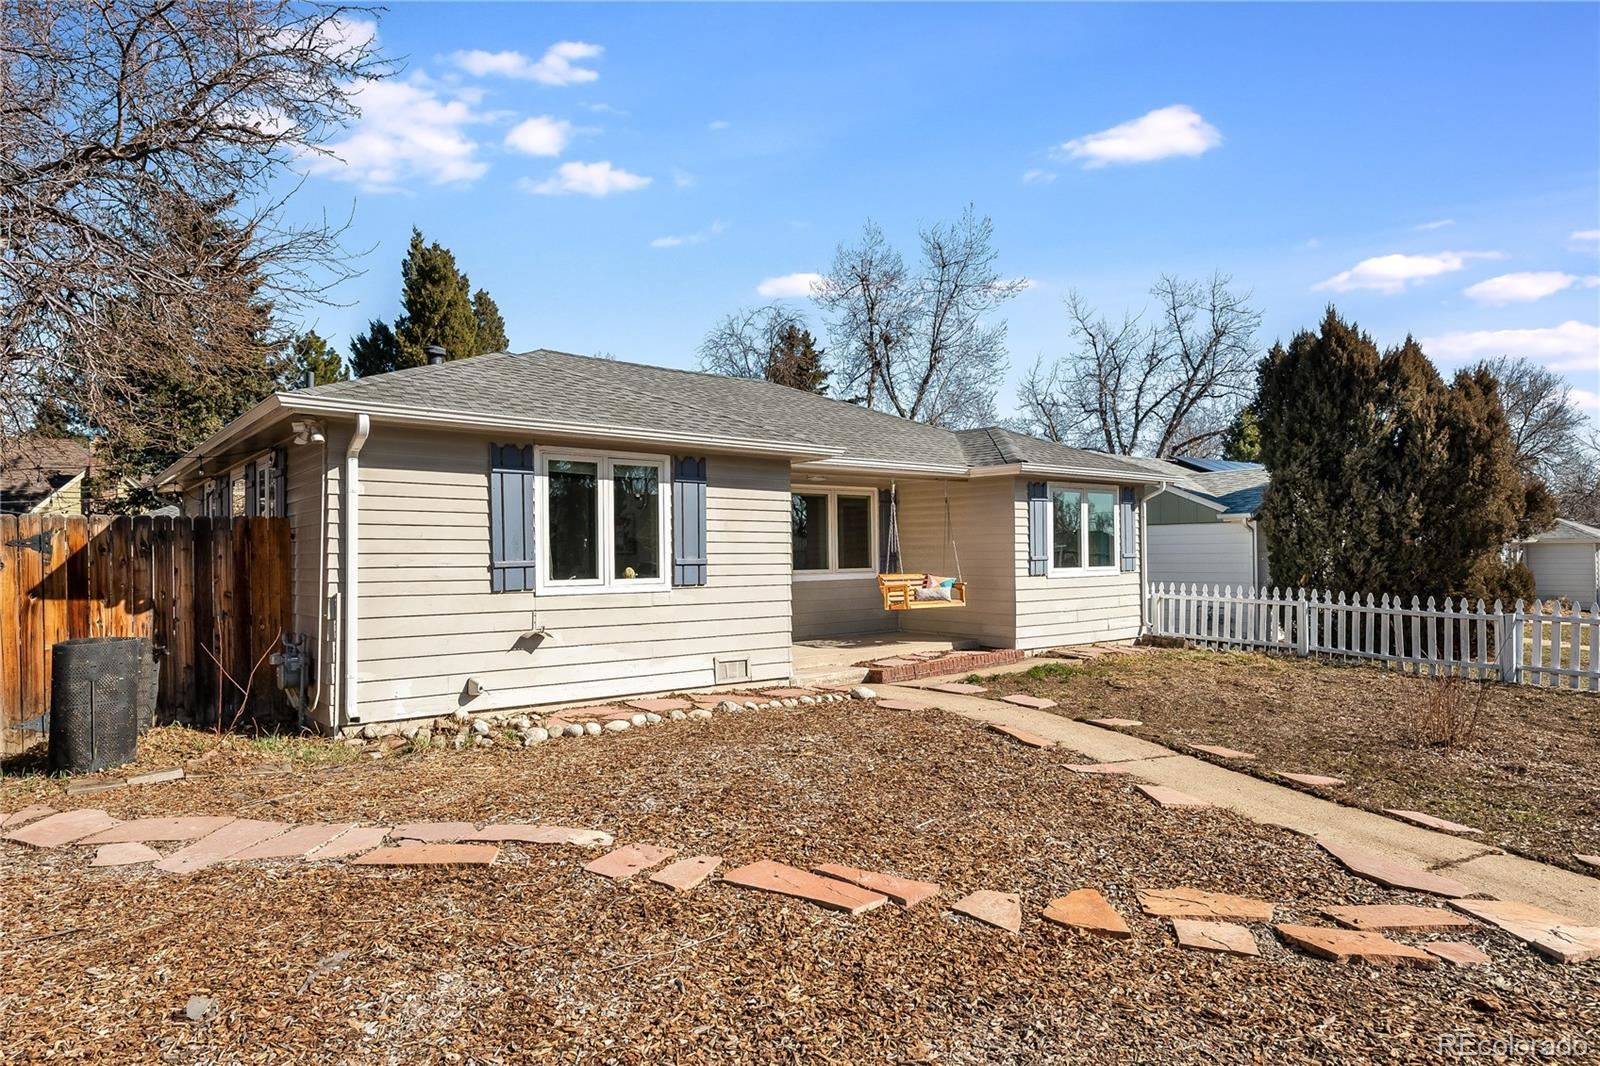 7195 W 24th Place, Lakewood, CO 80214 - #: 2050120